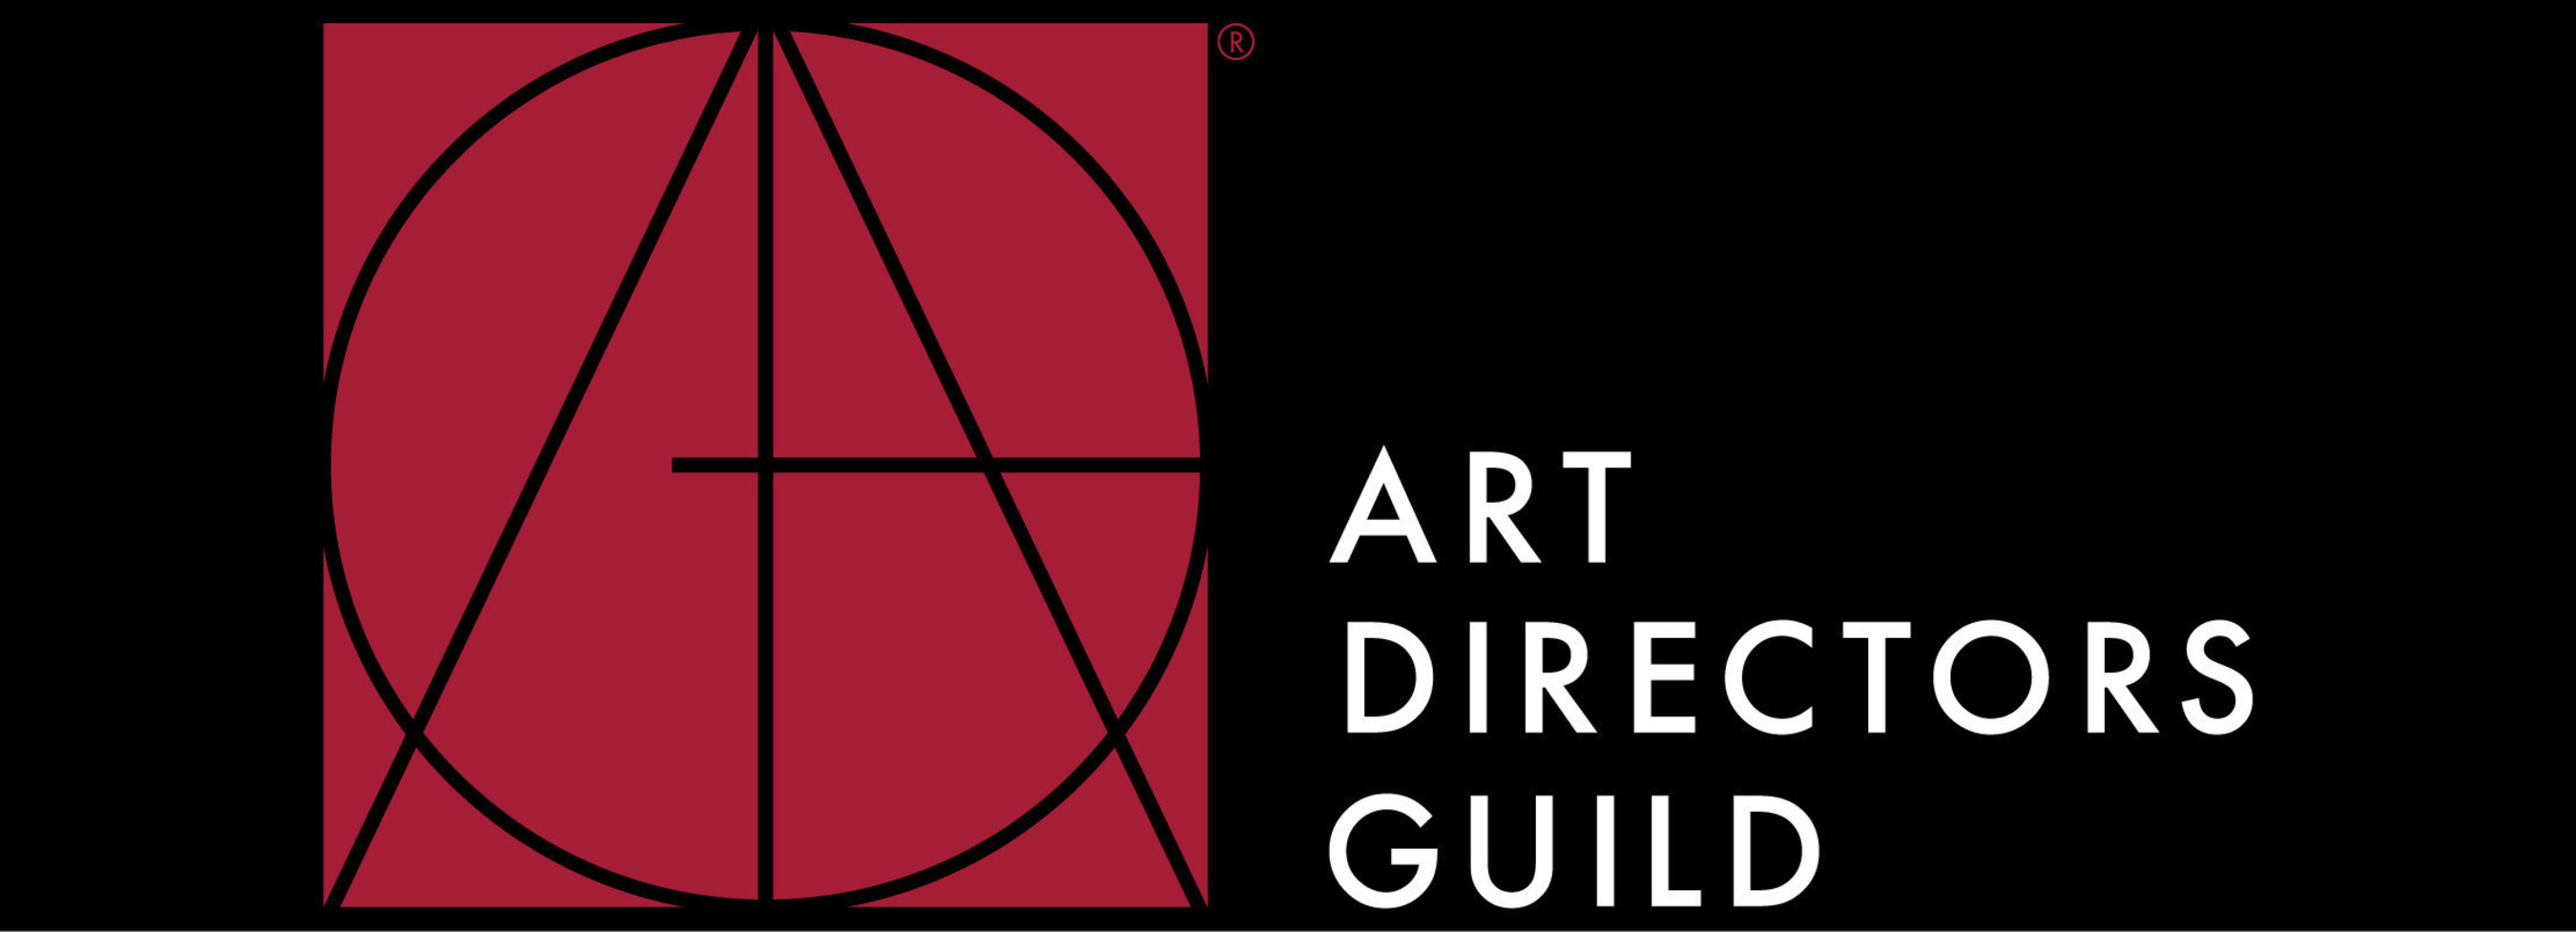 Academy Award® Nominee David O. Russell Set to Receive the Cinematic Imagery Award at the Art